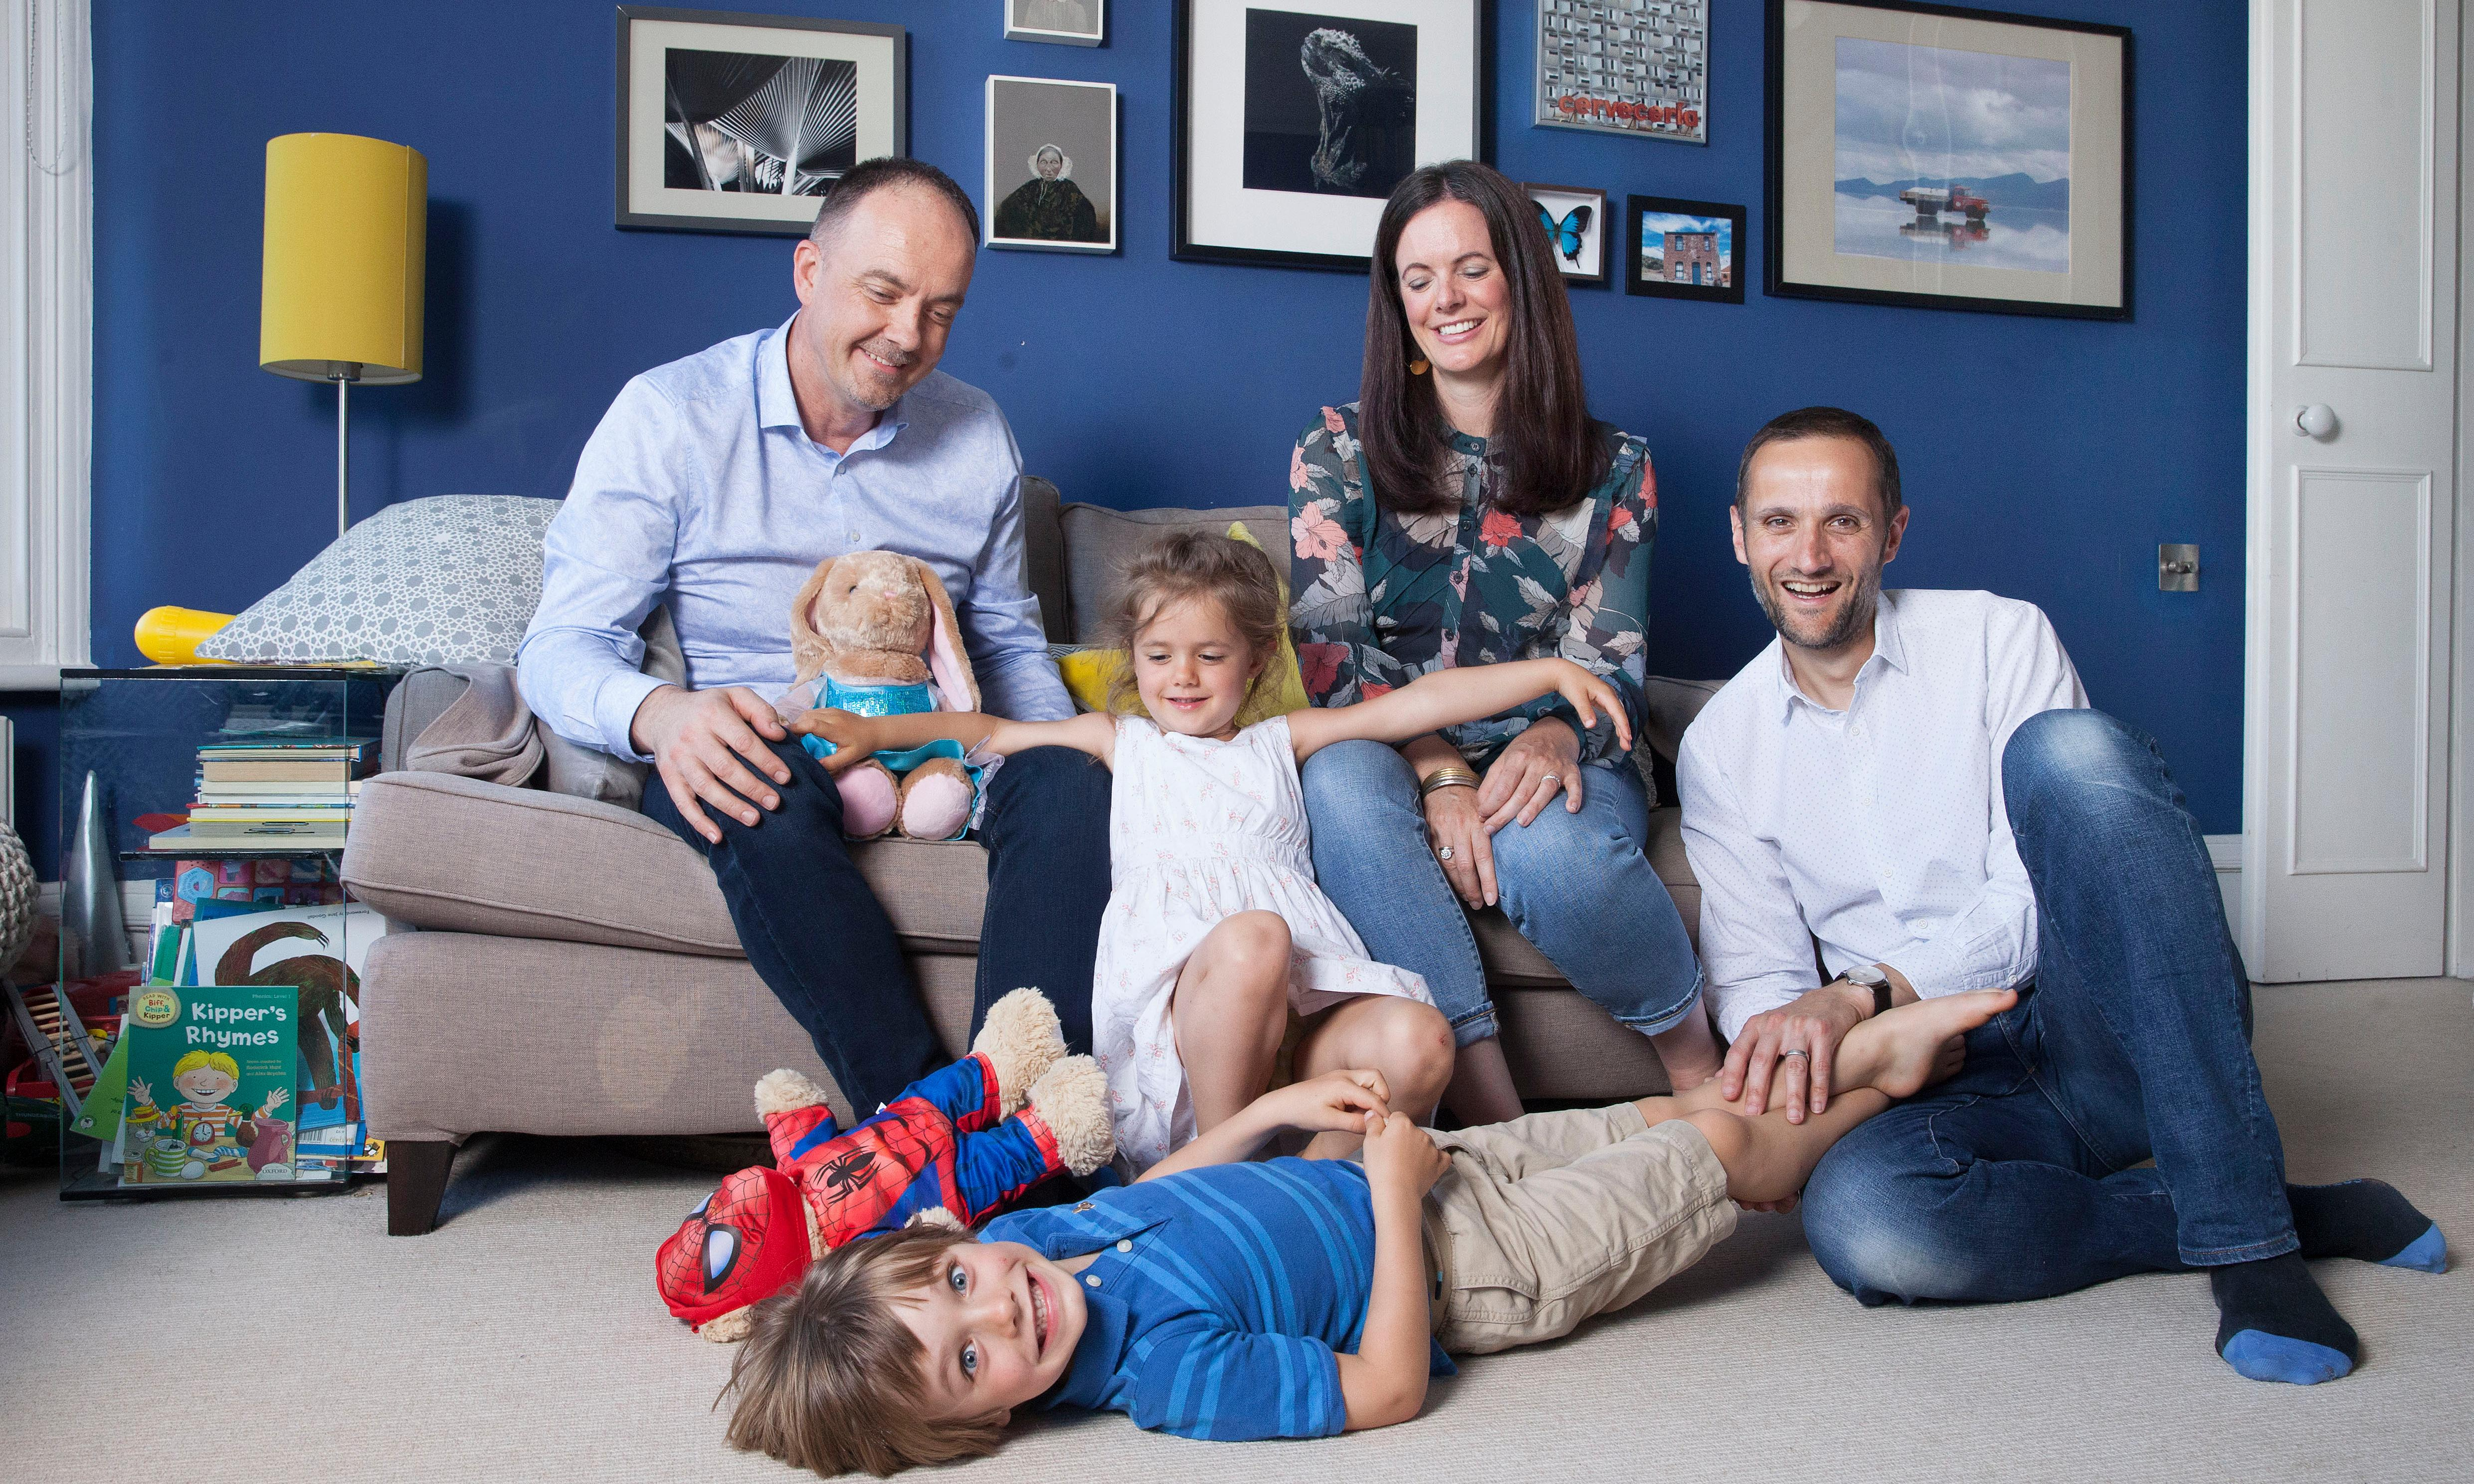 How we live together: the family and the weekday lodger